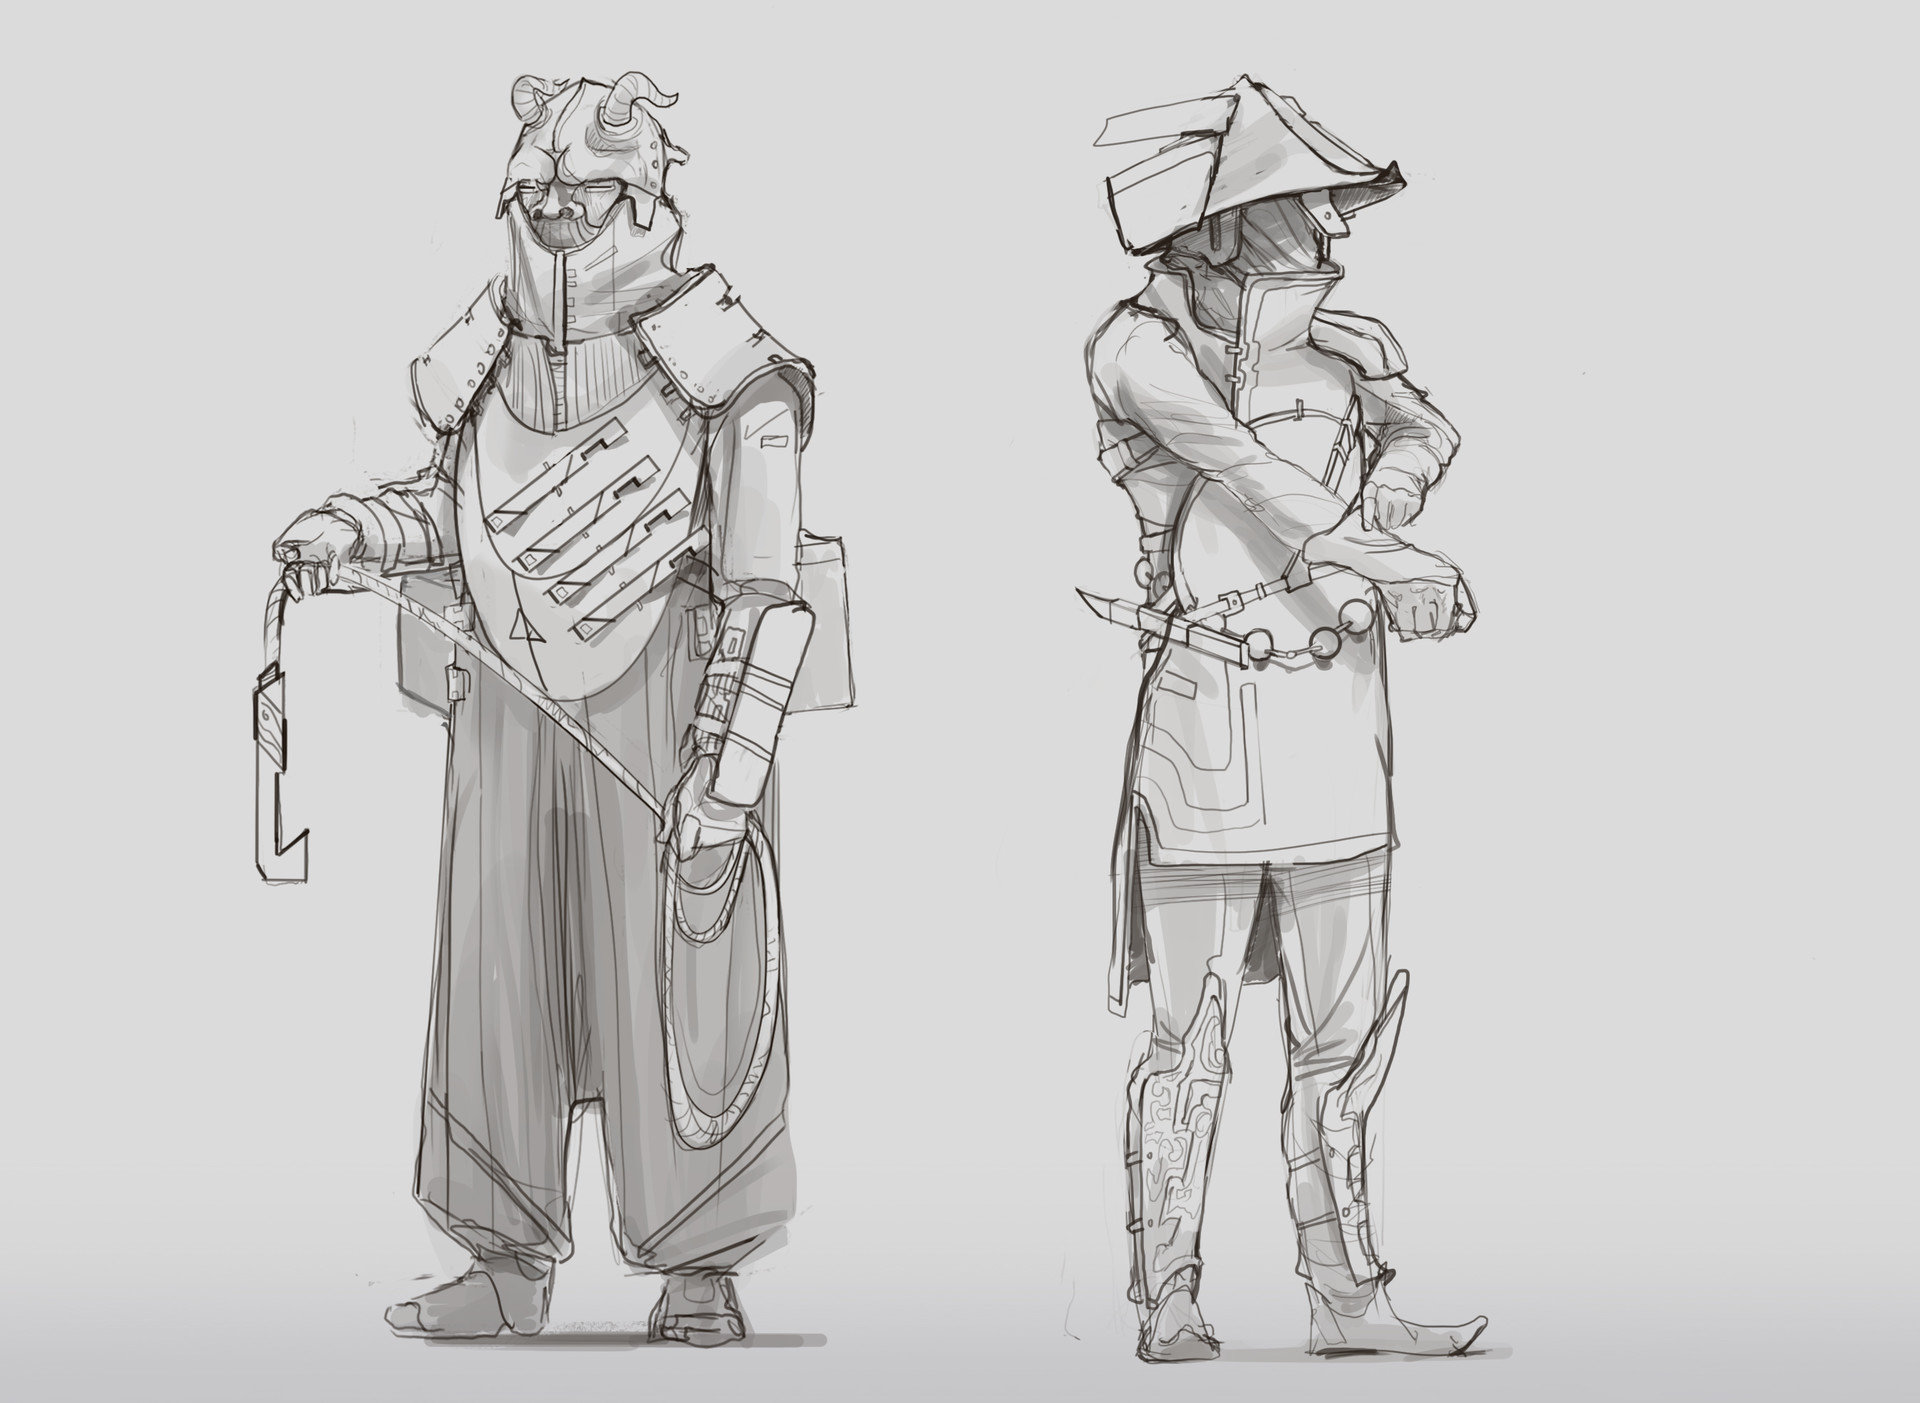 Edison moody character sketches 3